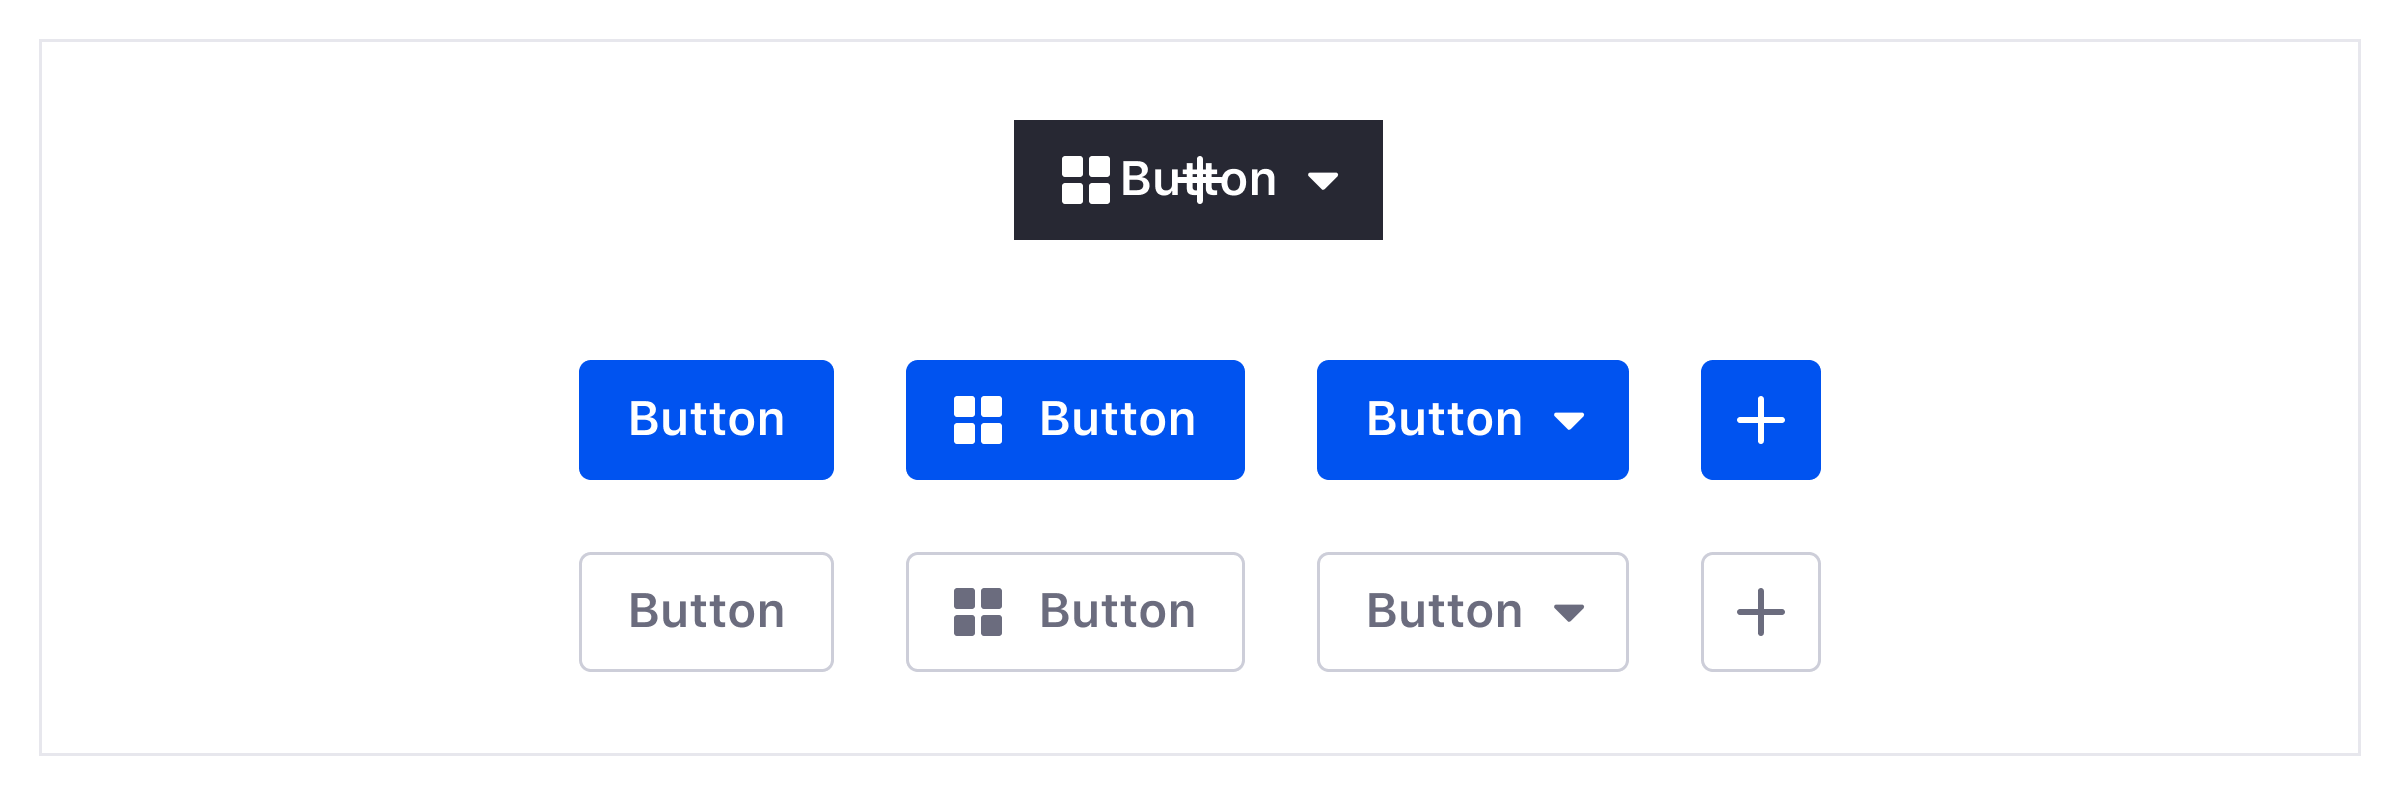 An example showing how 8 different buttons can be generated from 1 single component